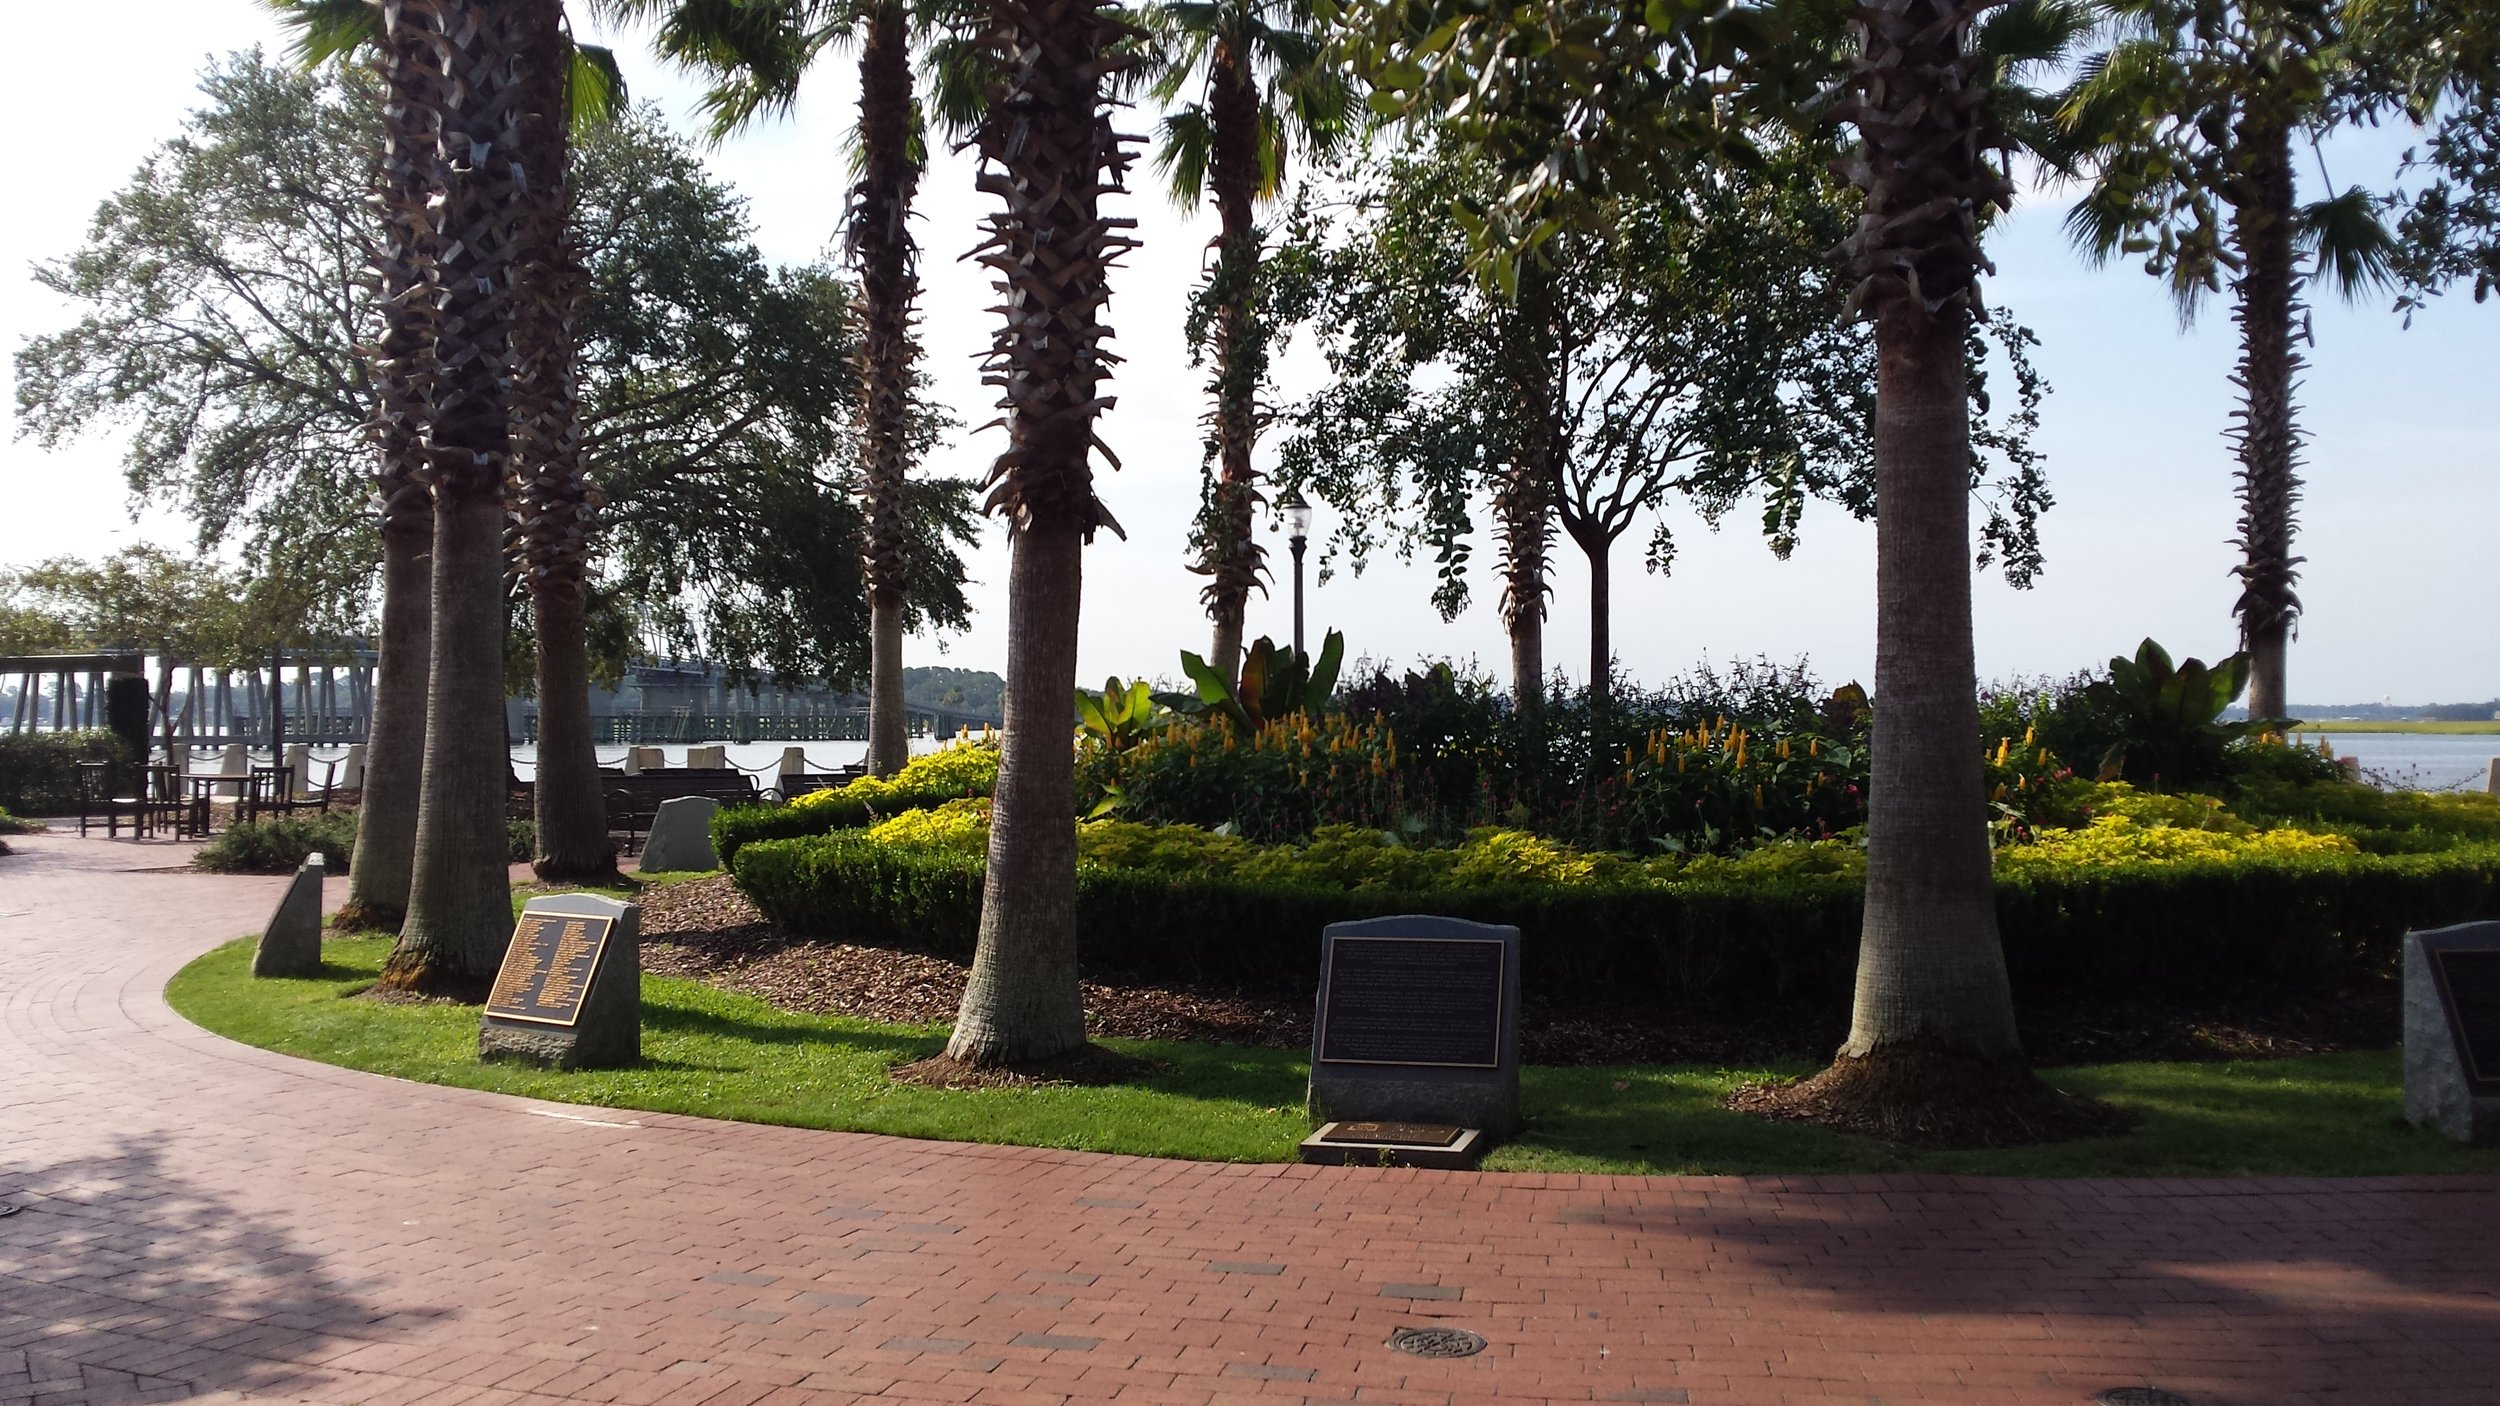 Henry C. Chambers Waterfront Park in Beaufort, South Carolina